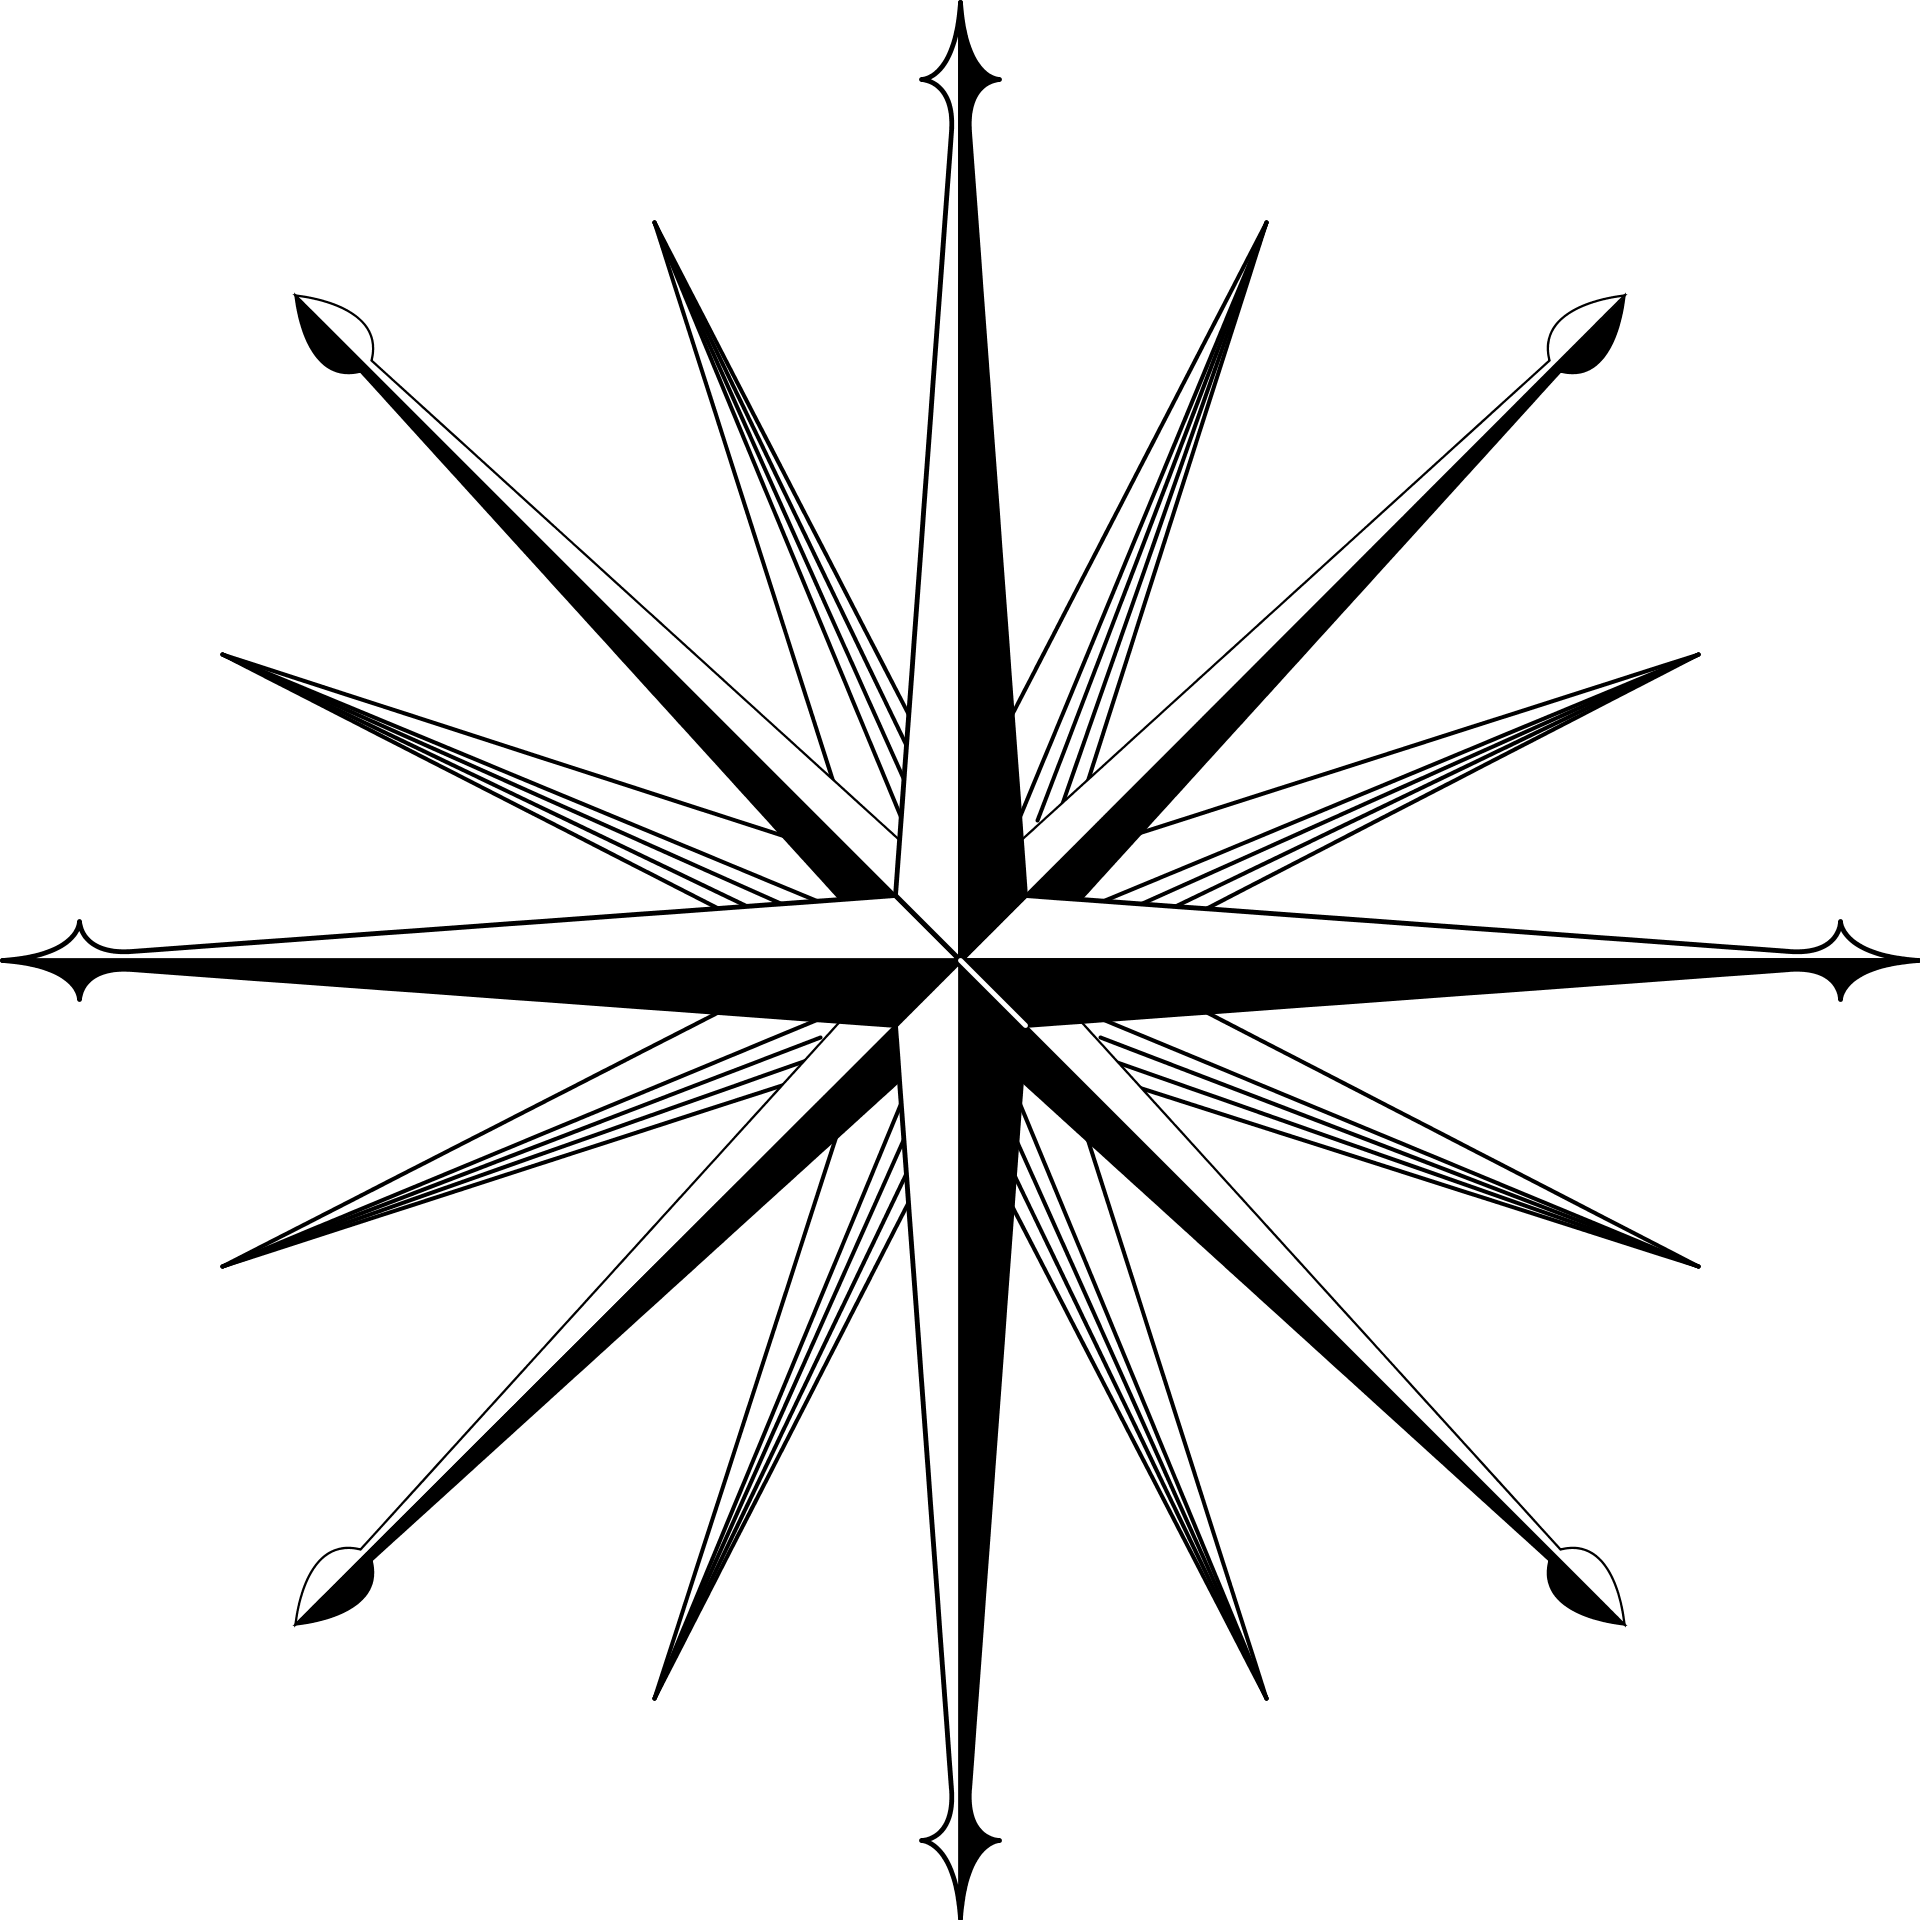 Compass Rose SVG - ClipArt Best - ClipArt Best